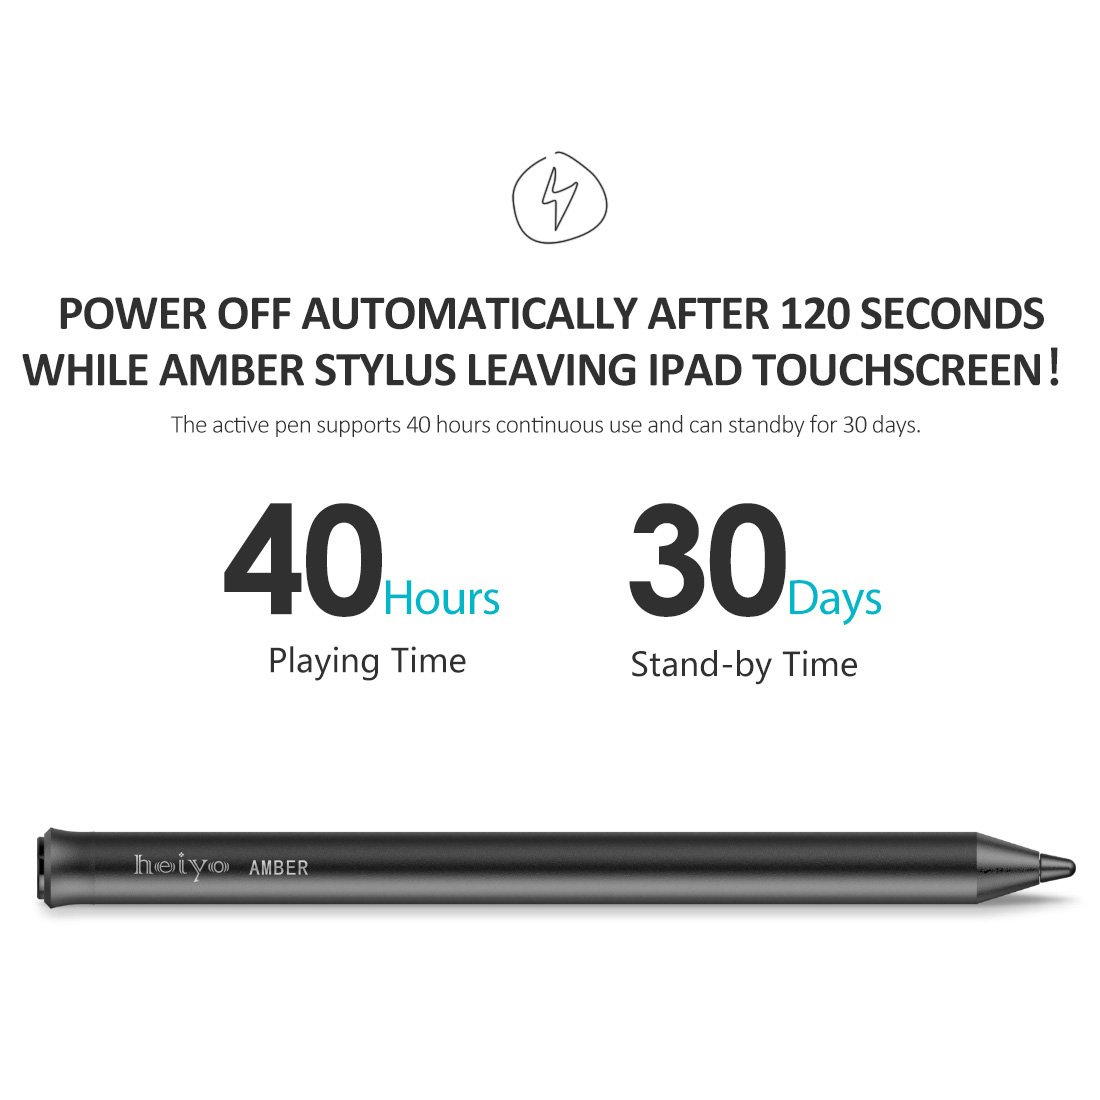 Heiyo iPad Active Stylus-Capacitive Digital Pen Supporting 40-Hour Playing Time 30-Day Stand 120-second Auto Power Off 3 Replaceable Fine Point Rubber Tips Touchscreen Styli Pencil iPad by Heiyo (Image #4)